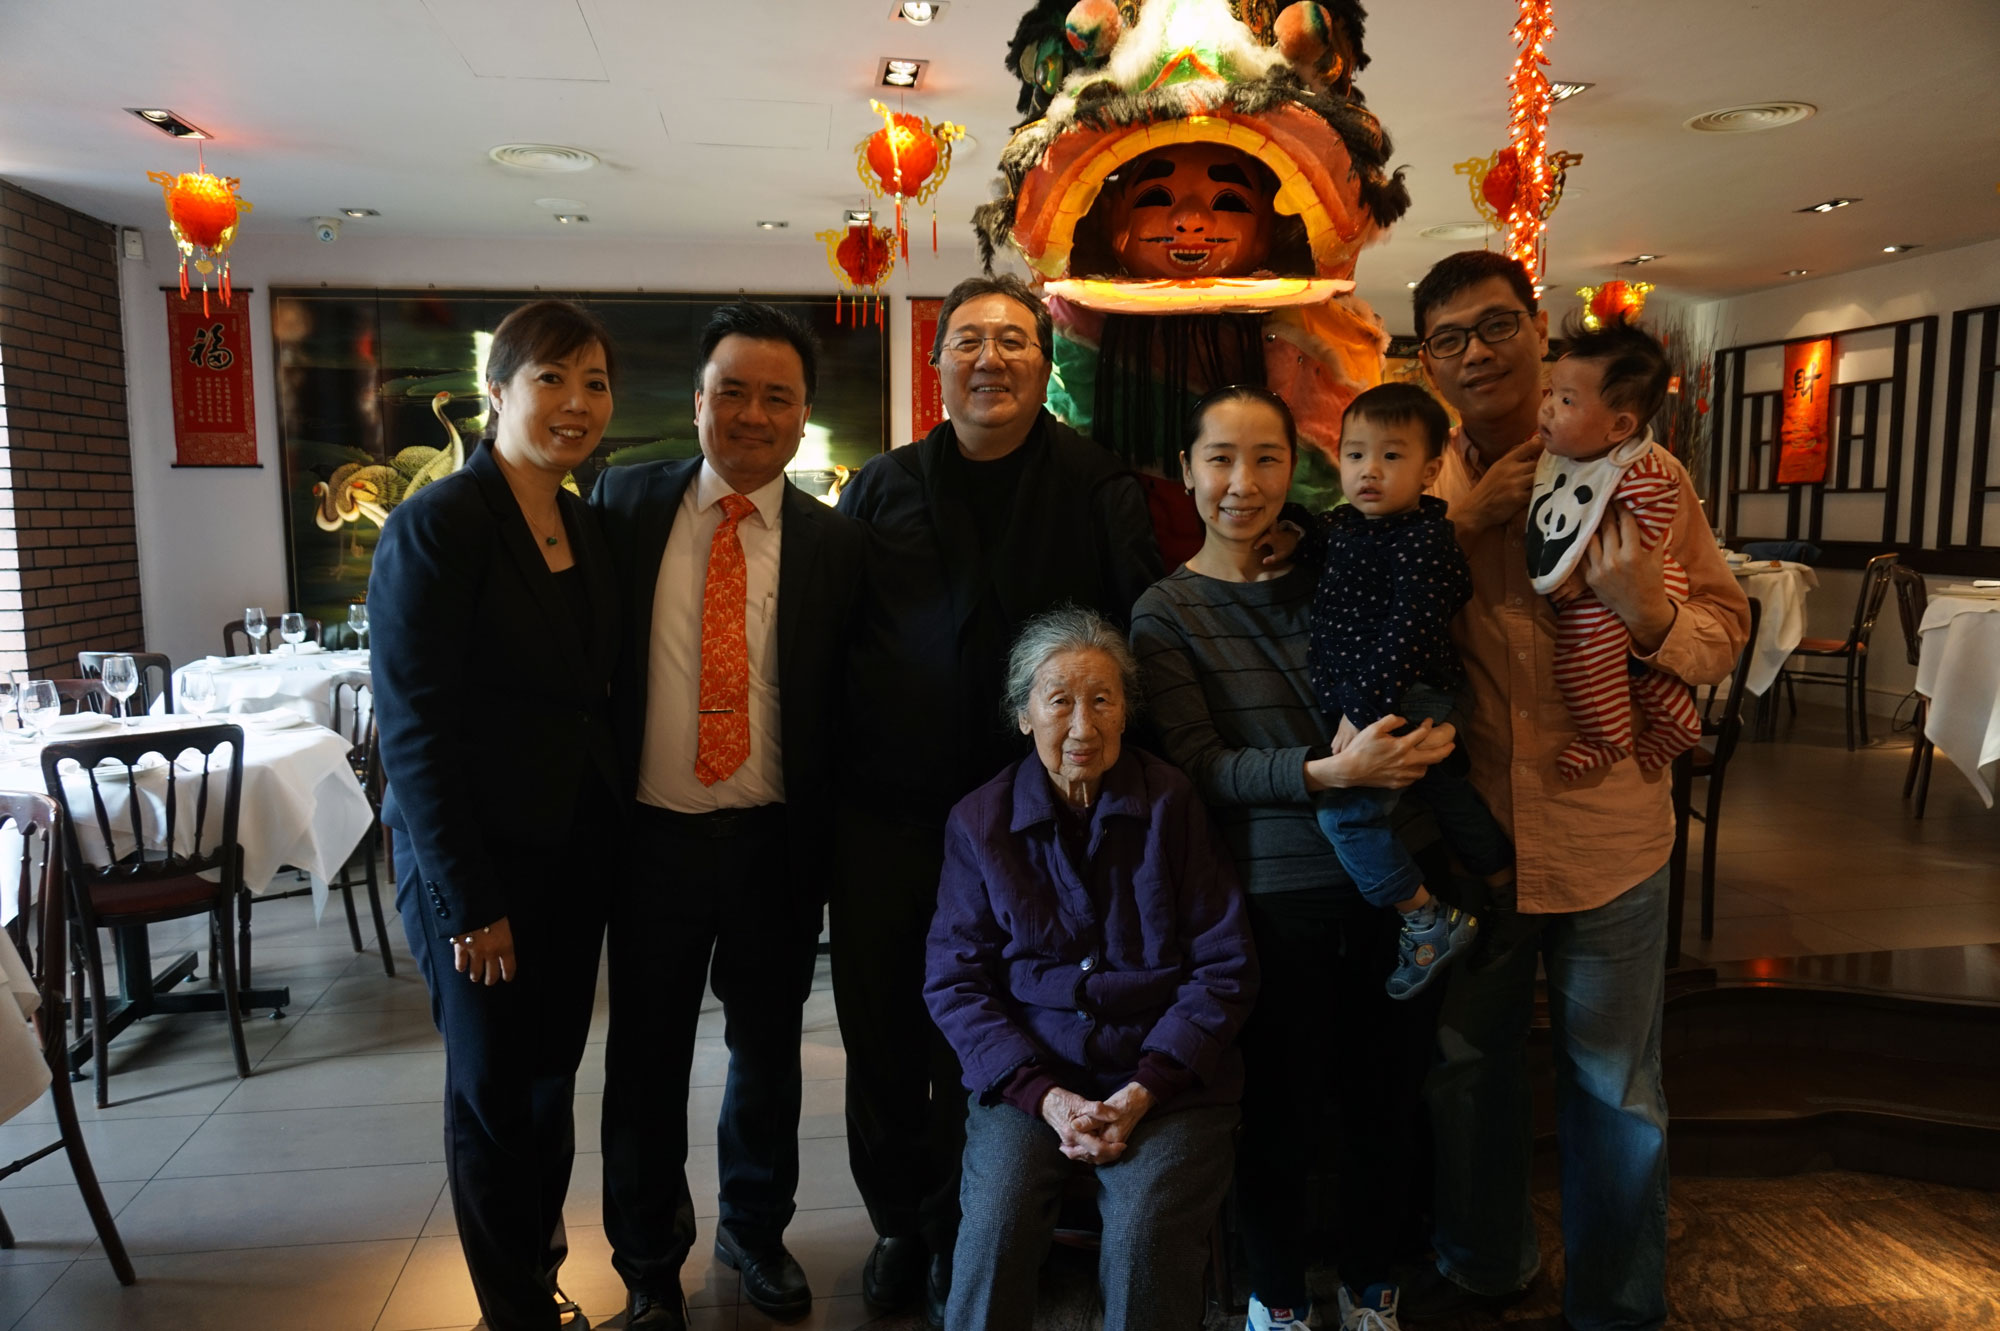 maxim-Chow-Family_-L-R-Tony-Front-of-House,-Son-Tony-Chow,-Granddaughter-Jocelyn,-Her-Kids-and-Her-Husband,-Mrs.-Chow-sat-down.JPG